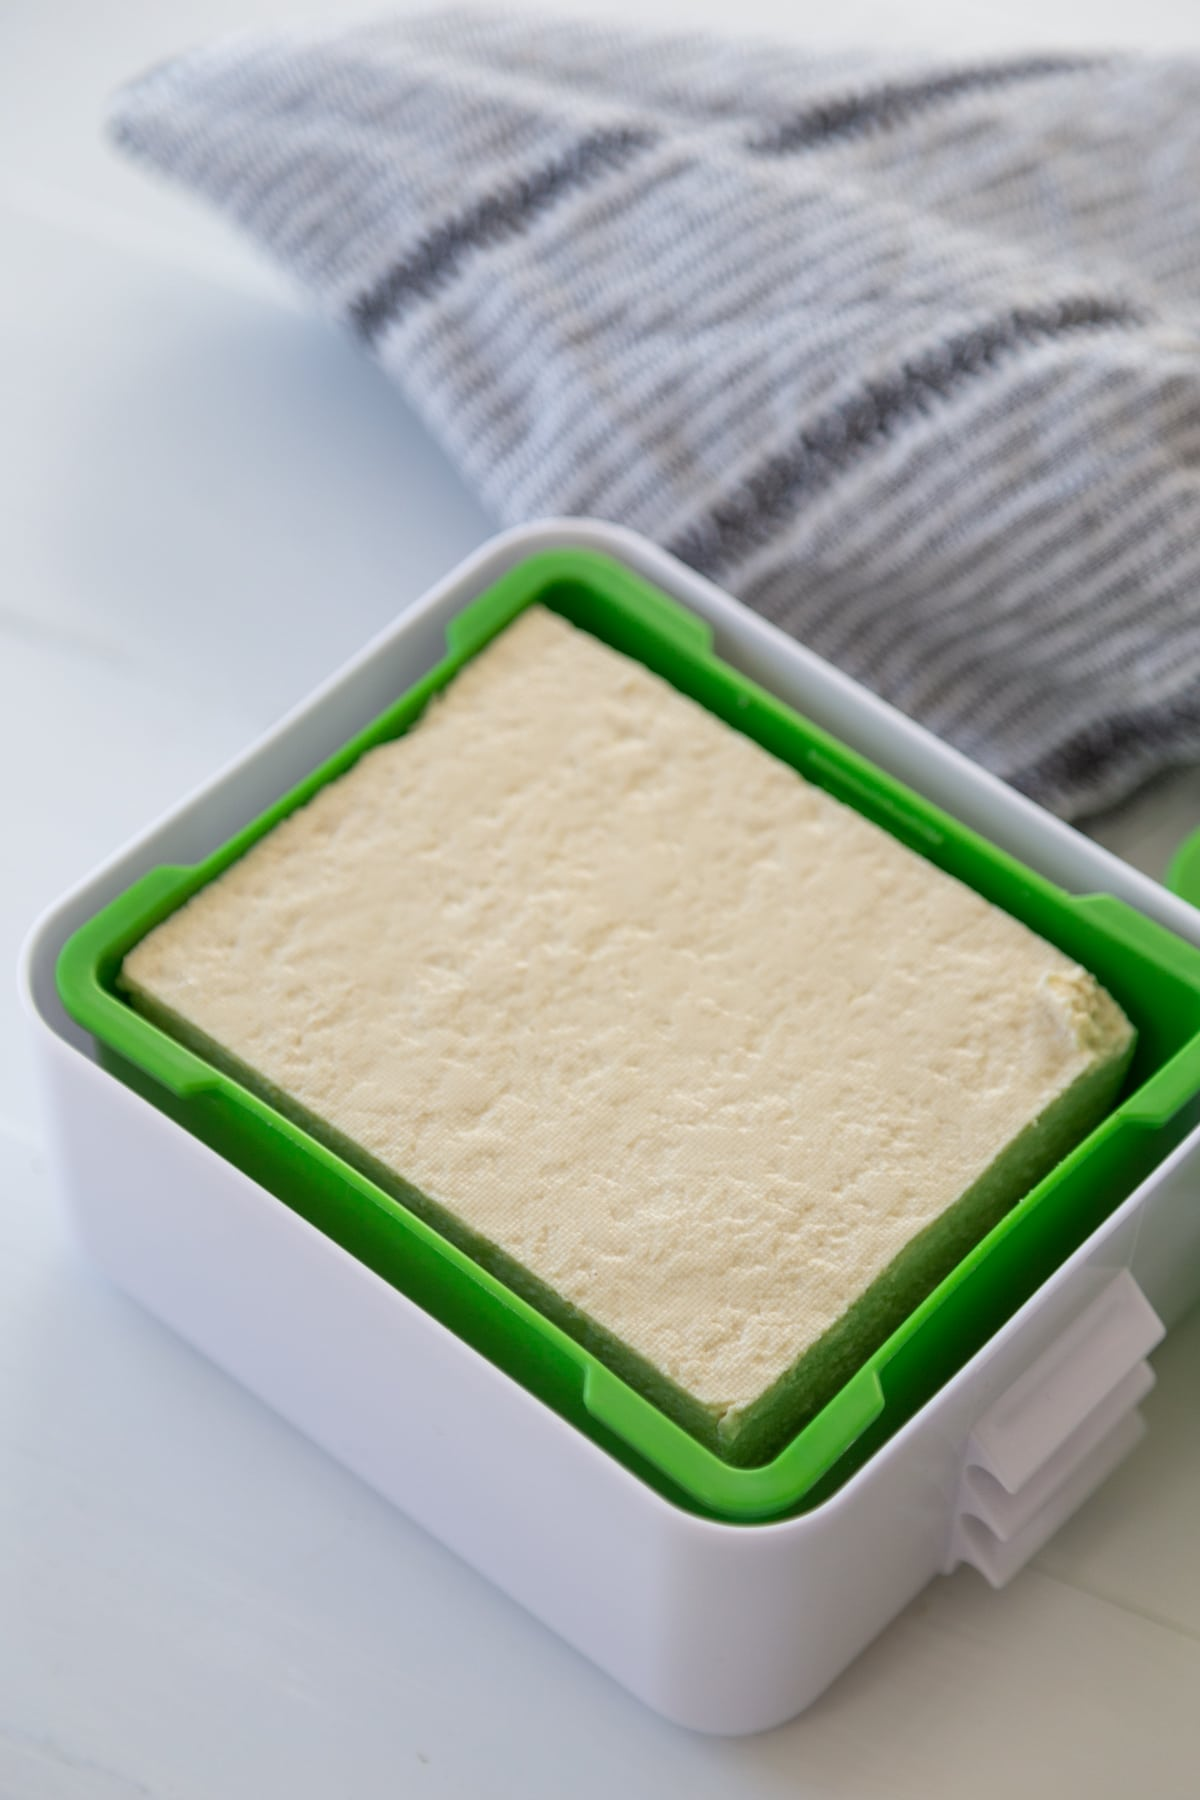 A block of tofu in a green and white tofu press.